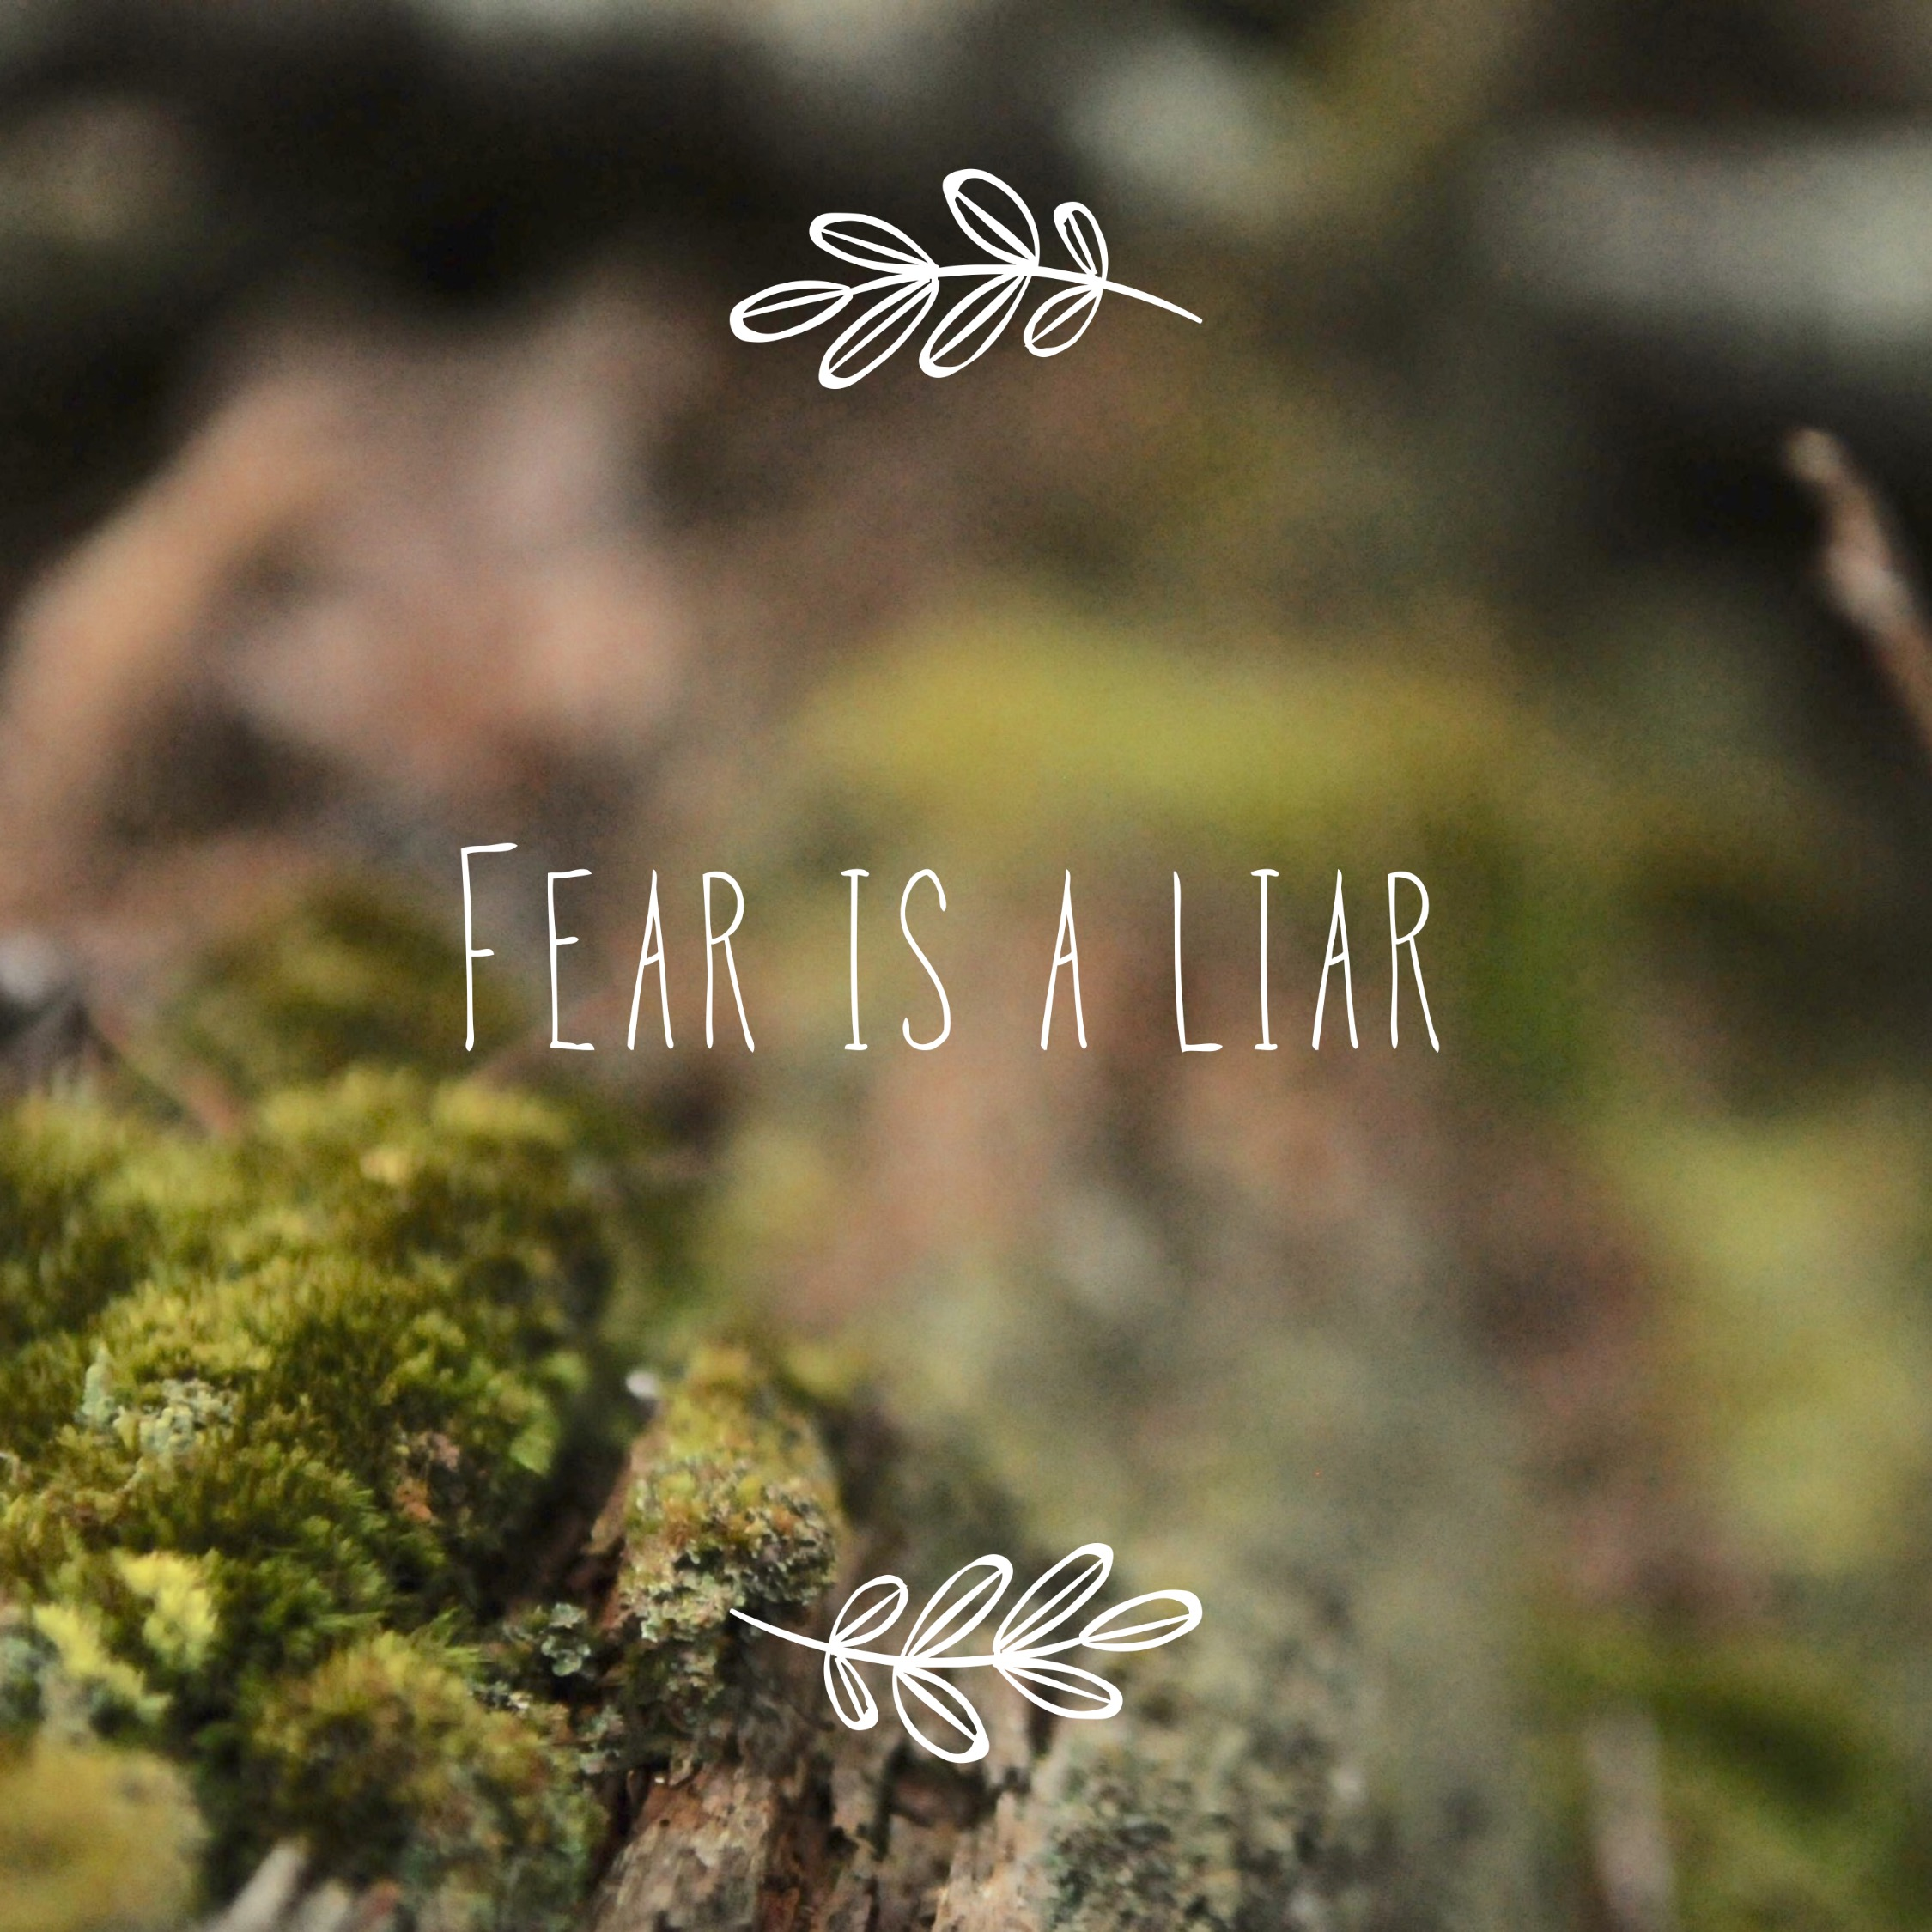 Inspirational Quotes about Fear | Quotes for Women | Fear is a Liar | Song Lyric Quotes | Encouragement | Winston Salem, NC | Winston Salem photographer | www.jasperandfern.com